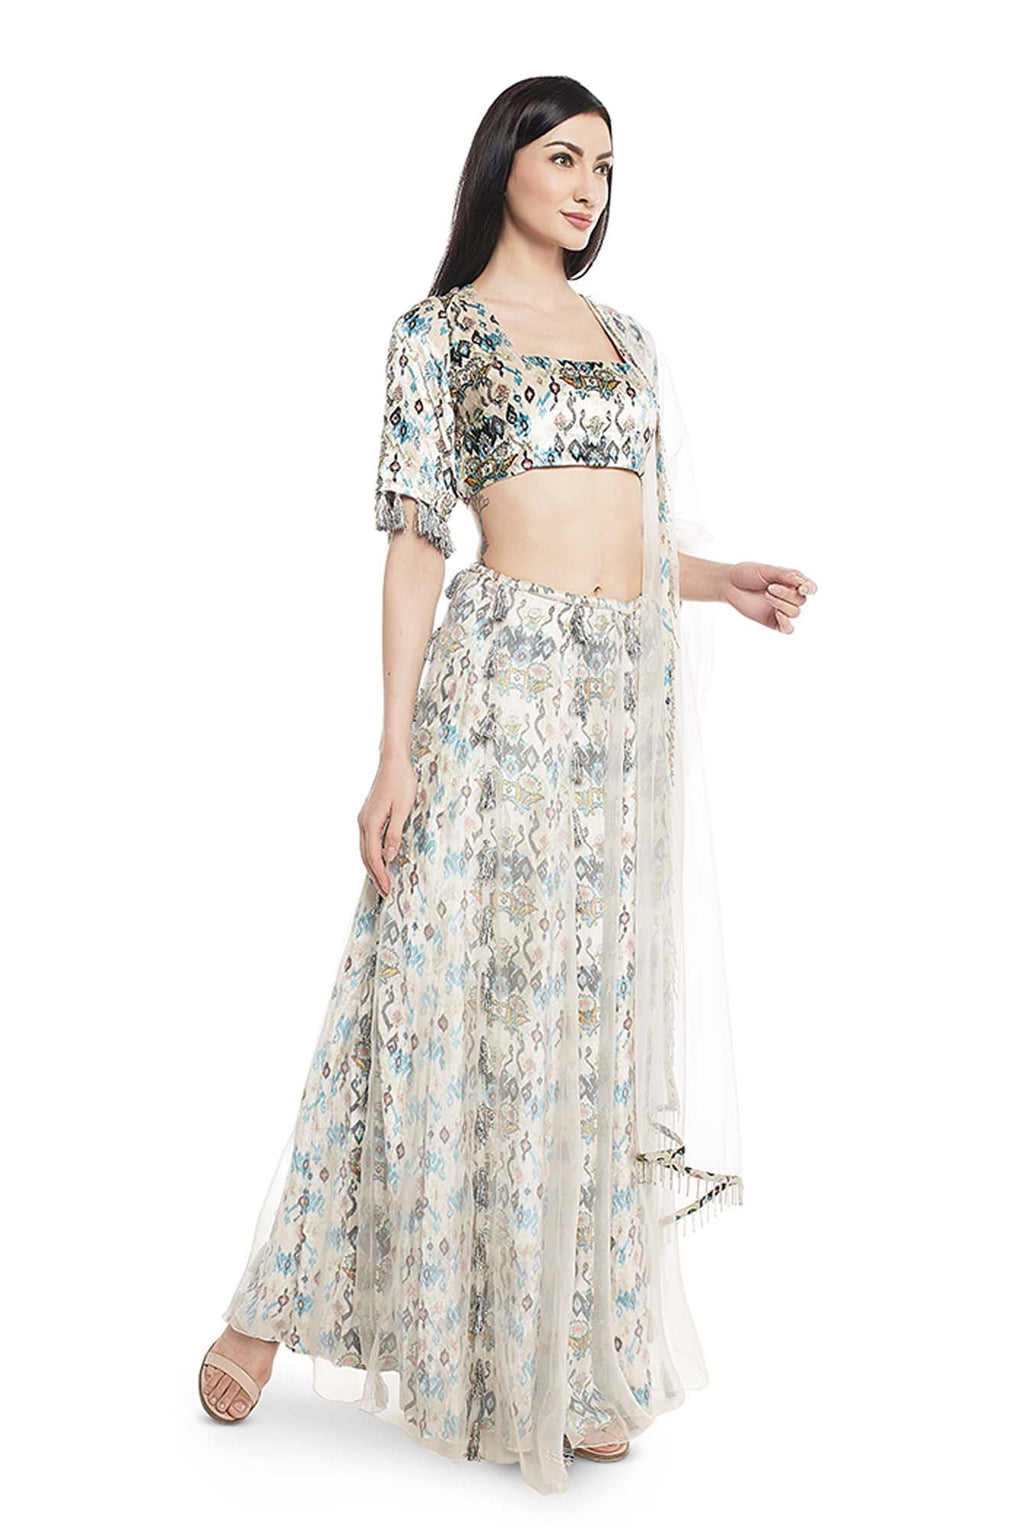 White Printed Velvet Choli and Lehenga with Attached White Organza Layer and Dupatta - Riviera Closet